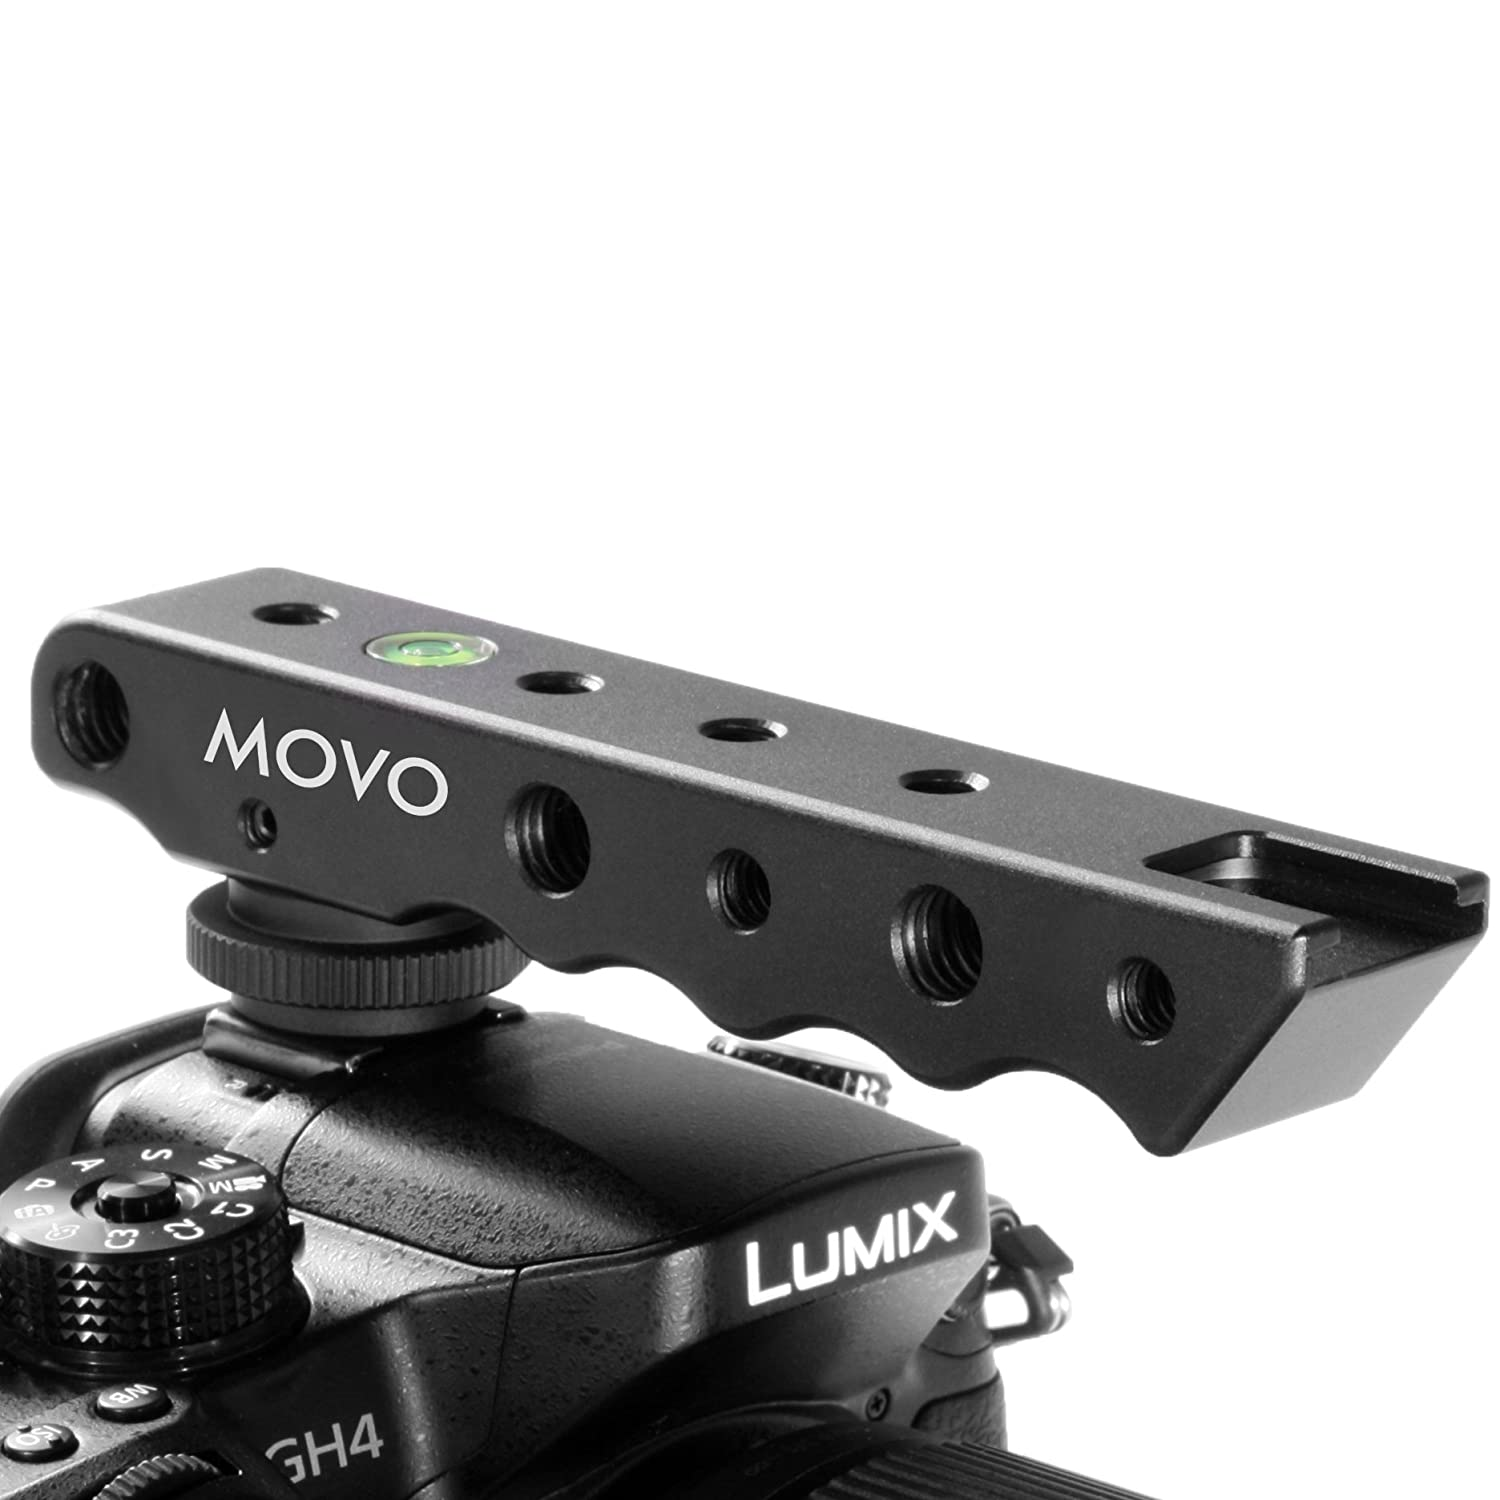 Movo Photo Svh6 Video Stabilizing Top Handle Cold Hot Shoe Bubble Spirit Level For Nikon Canon Pentax Olympus Panasonic Extender Eos Dslr Cameras Camera